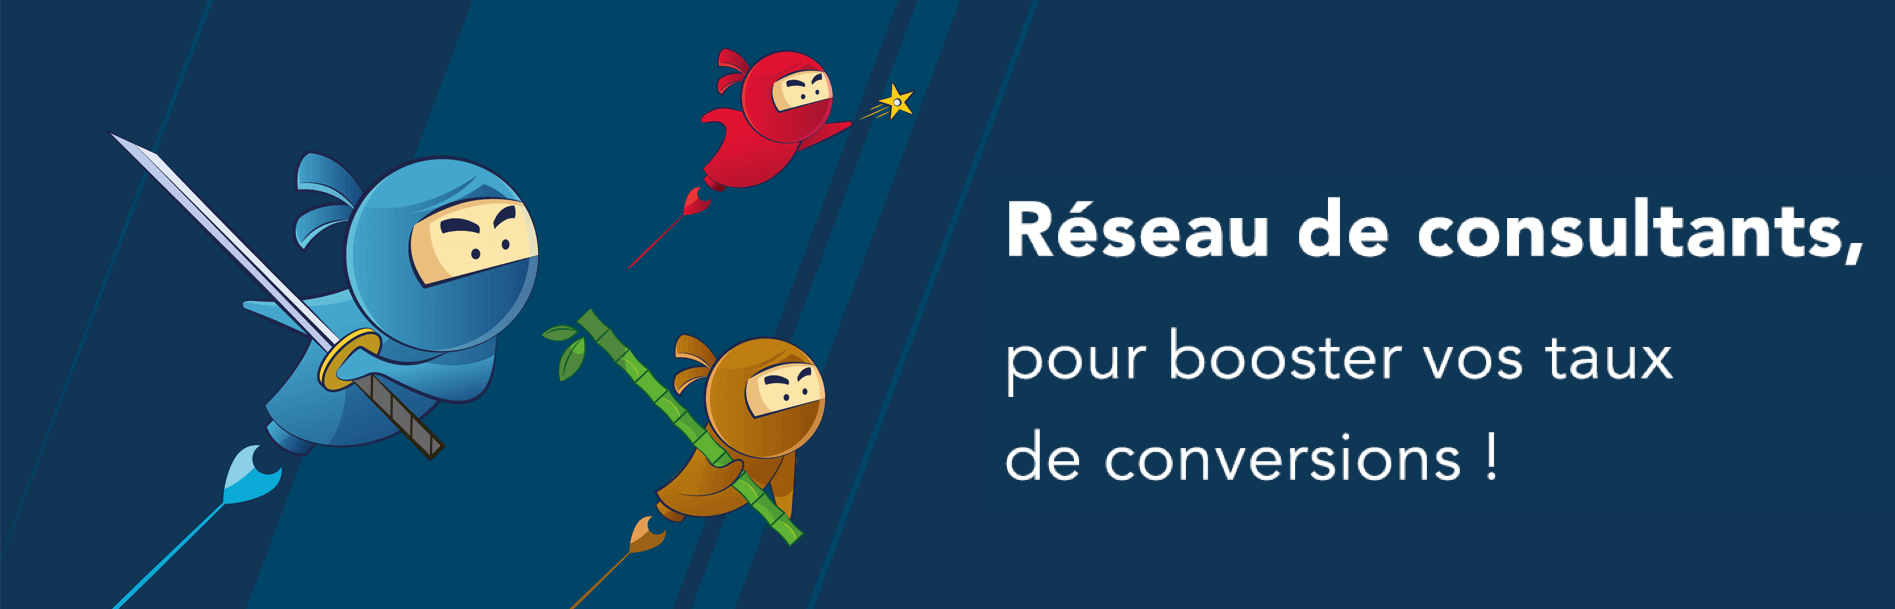 conversion-boosters-reseau-de-consultants